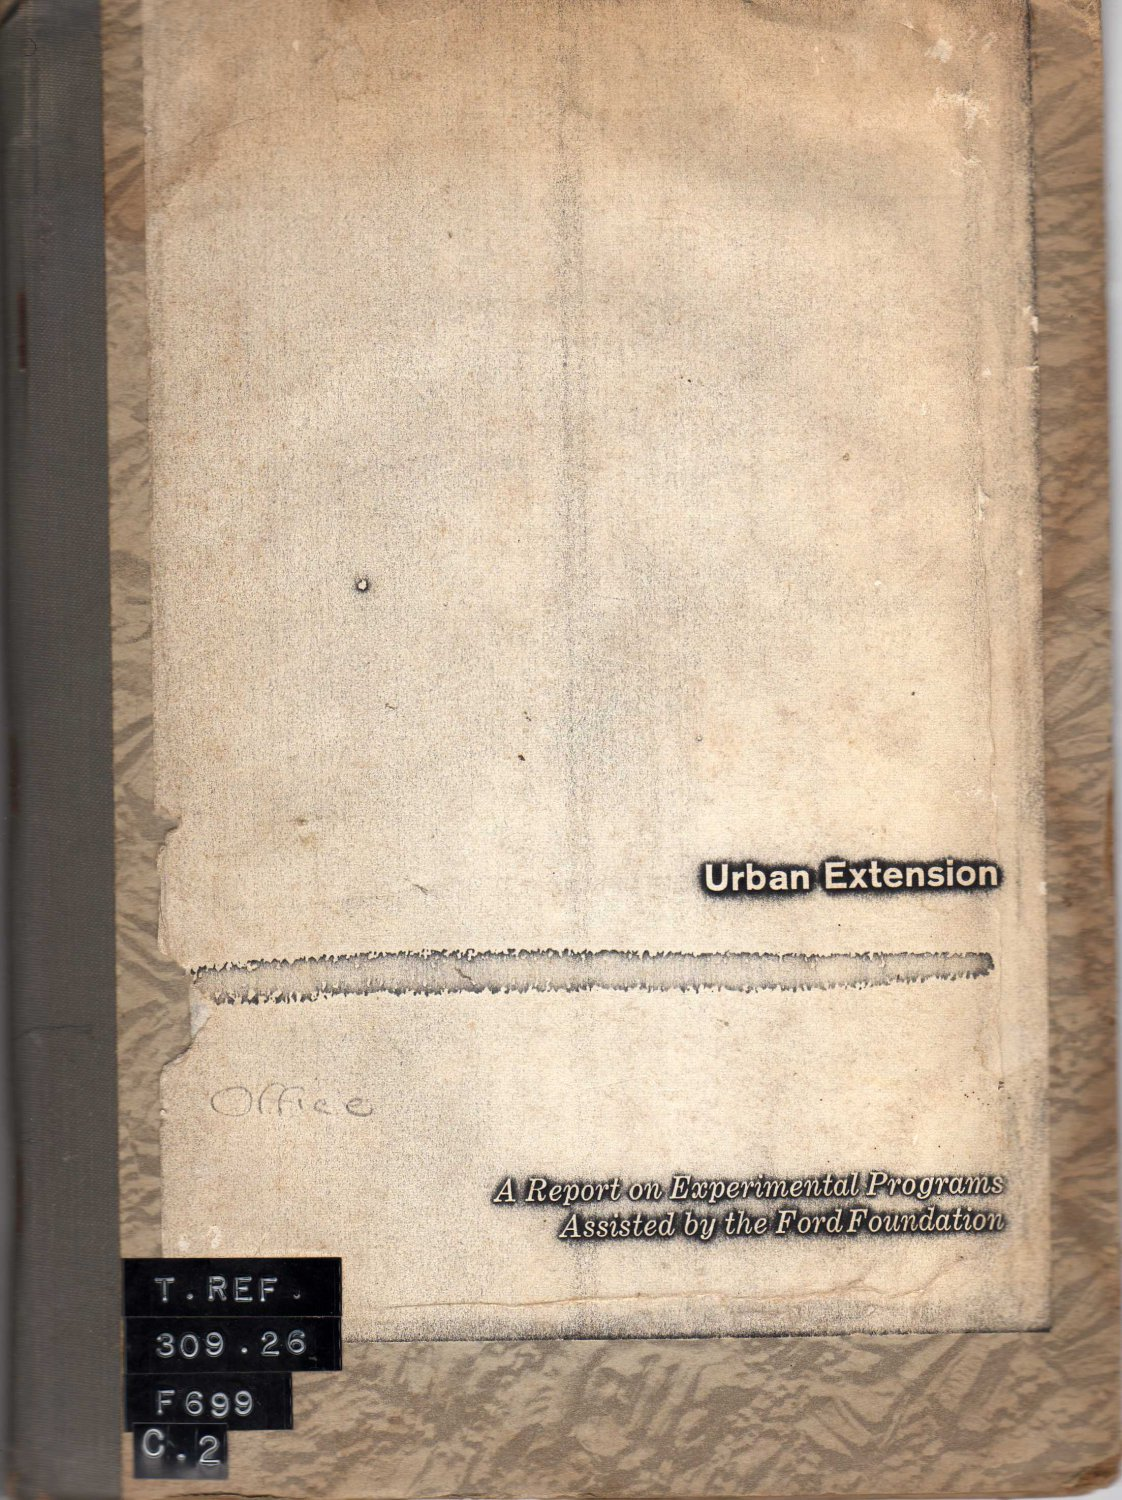 Urban Extension: A Report on Experimental Programs Assisted by the Ford Foundation (Hardcover 1966)